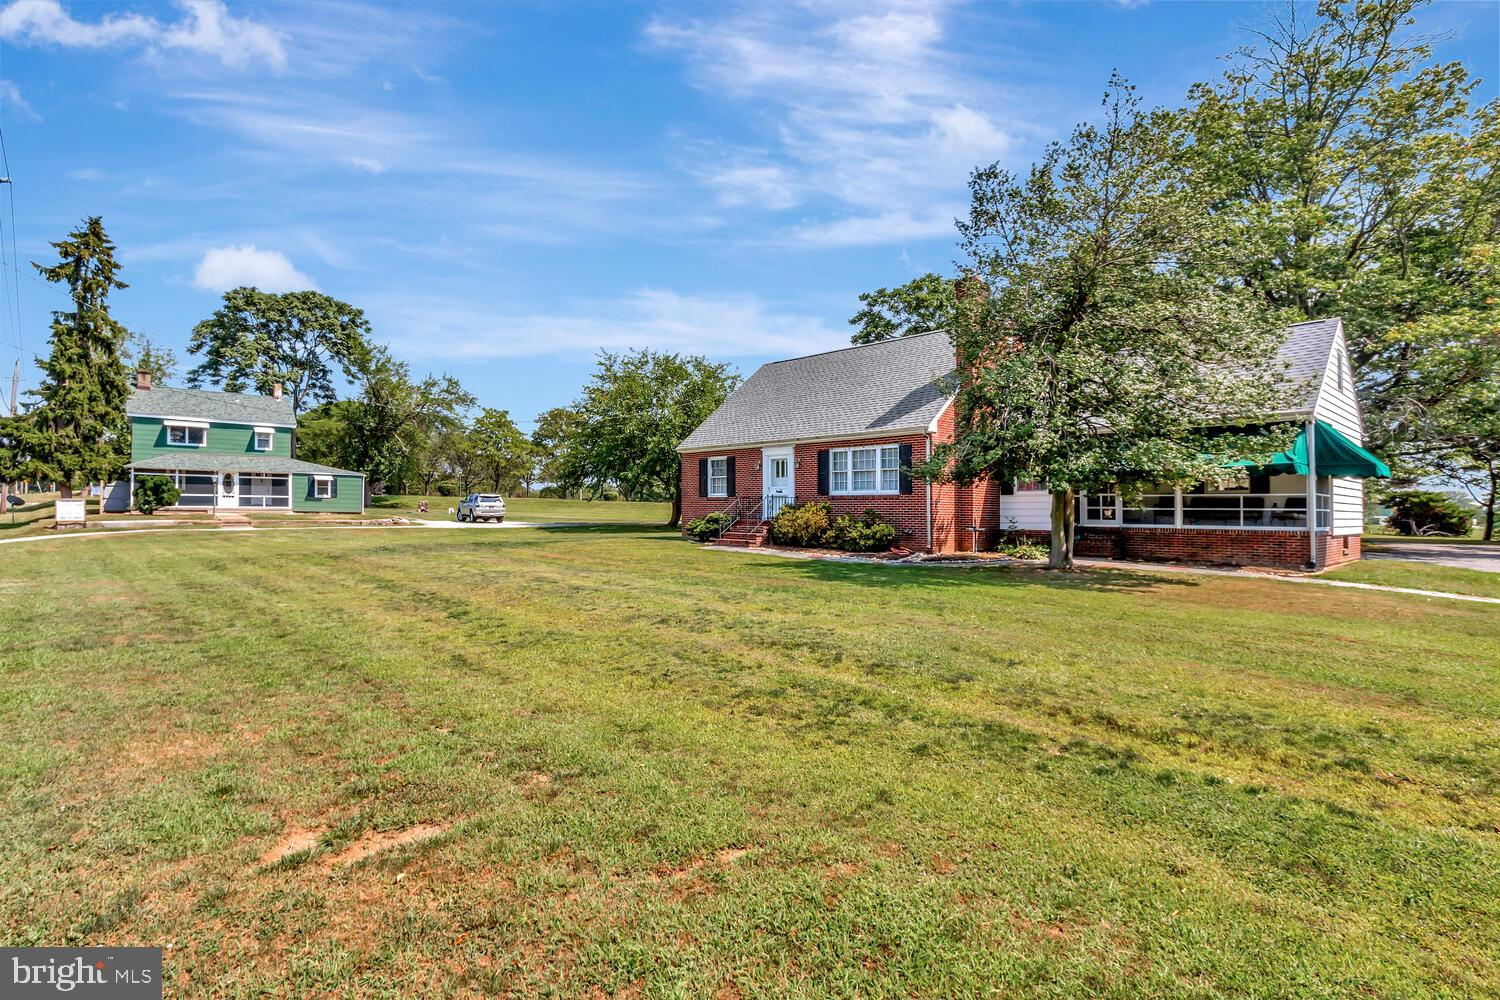 """Opportunity of a lifetime! There's nothing like it in New Castle County! Two houses on .98 acre parcel surrounded by Delcastle Recreational Park and facing Delcastle Golf Course! Live in one, rent the other and have instant income! The main house is a charming cape cod, custom built in 1957 with 4 bedrooms, 2 full baths, spacious eat in kitchen with island, a fireplace and a screened porch. It has been recently painted and has solid wood doors, refinished hardwood floors, thermapane windows, stainless steel gutters, new roof and new septic system. The farmhouse or """"Green House"""" as the owner calls it, is the original farmhouse that was built in 1850 and has been updated to include modern conveniences without losing its historical charm. Some features are; original stone fireplace, long leaf yellow pine floors, bullseye glass in front door, exposed rafters and more. Updates include, thermapane windows, central A/C, new roof and new septic. It has 2 bedrooms and 2 baths, it's own garage and work shop. This unique property can be yours if you hurry!"""